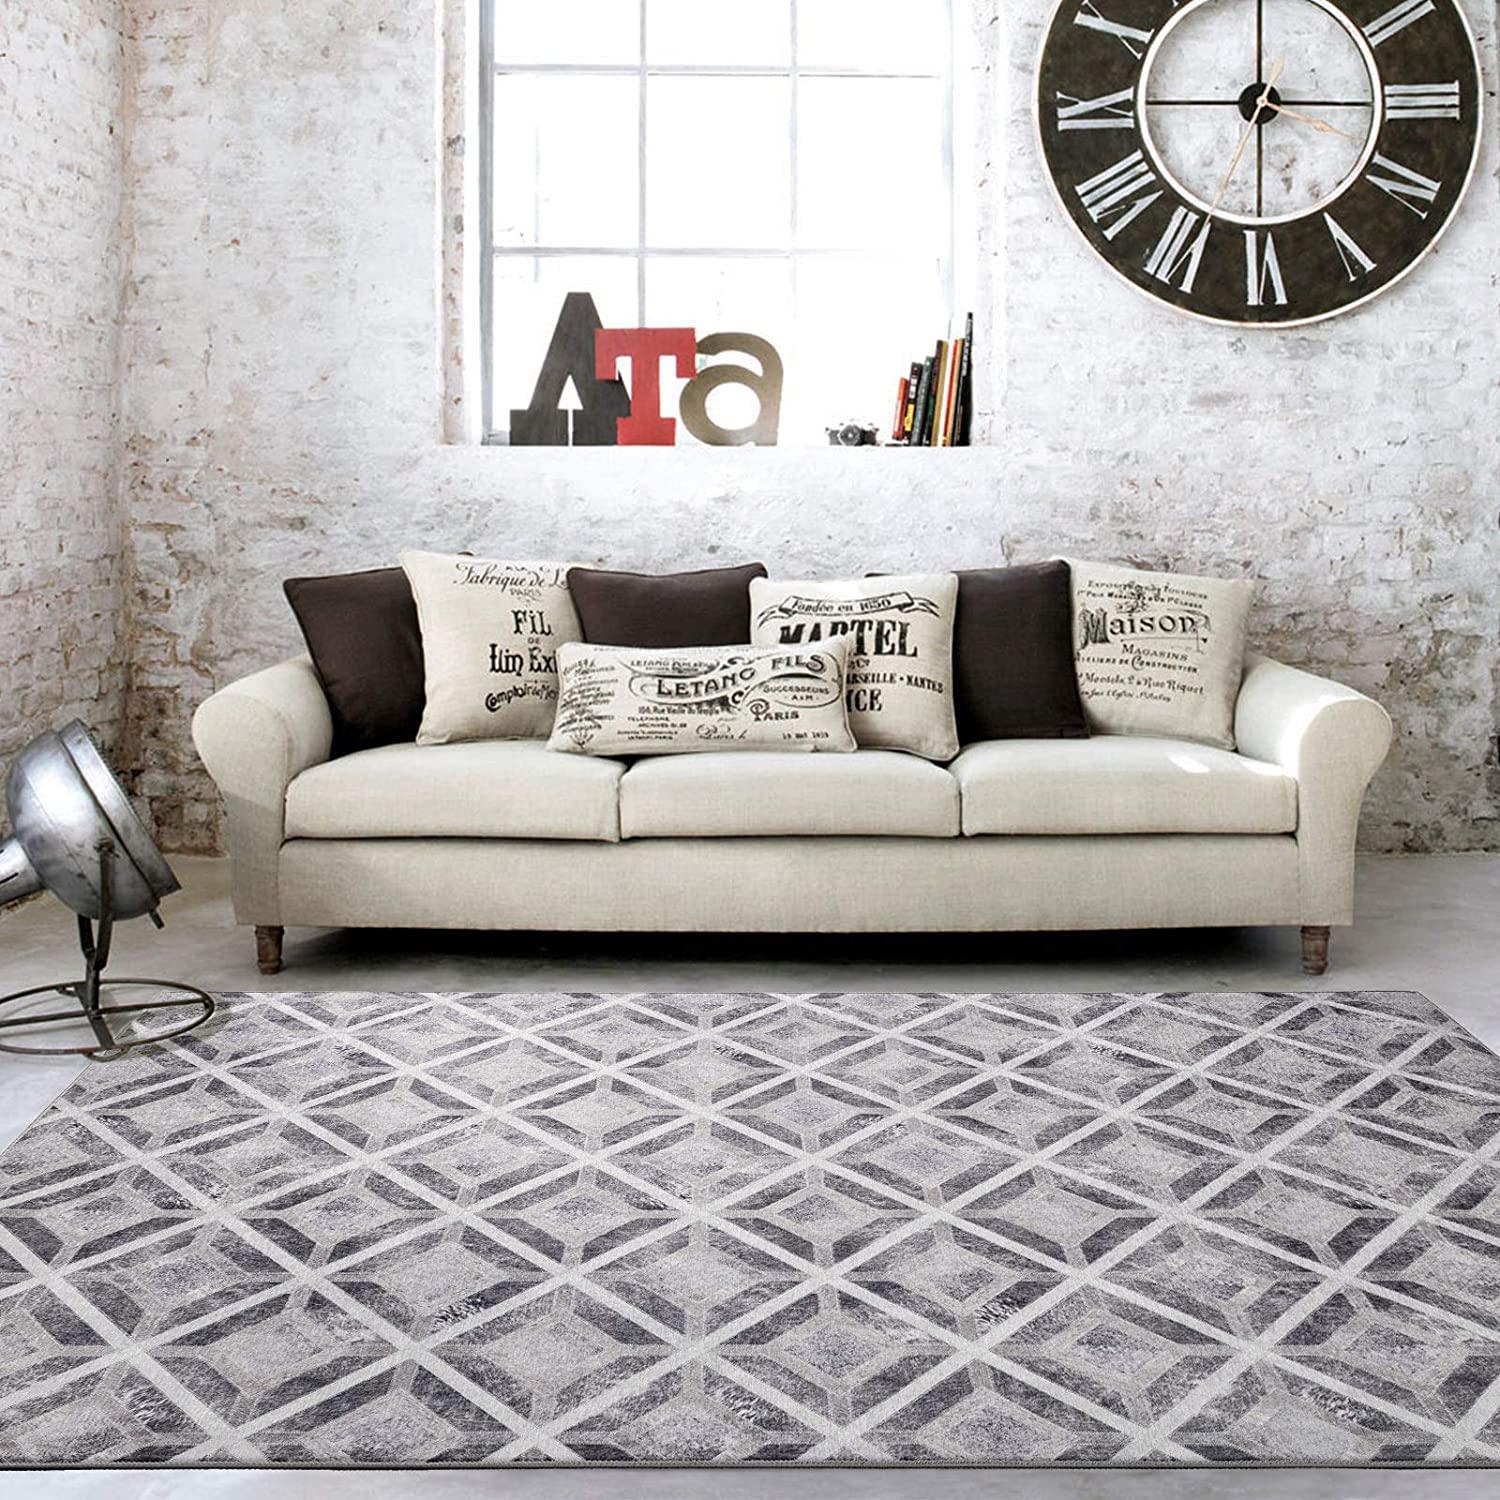 Decomall Faux Cowhide Patchwork Printed Area Rug For Living Room Bedroom Gray 8x10 Kitchen Dining